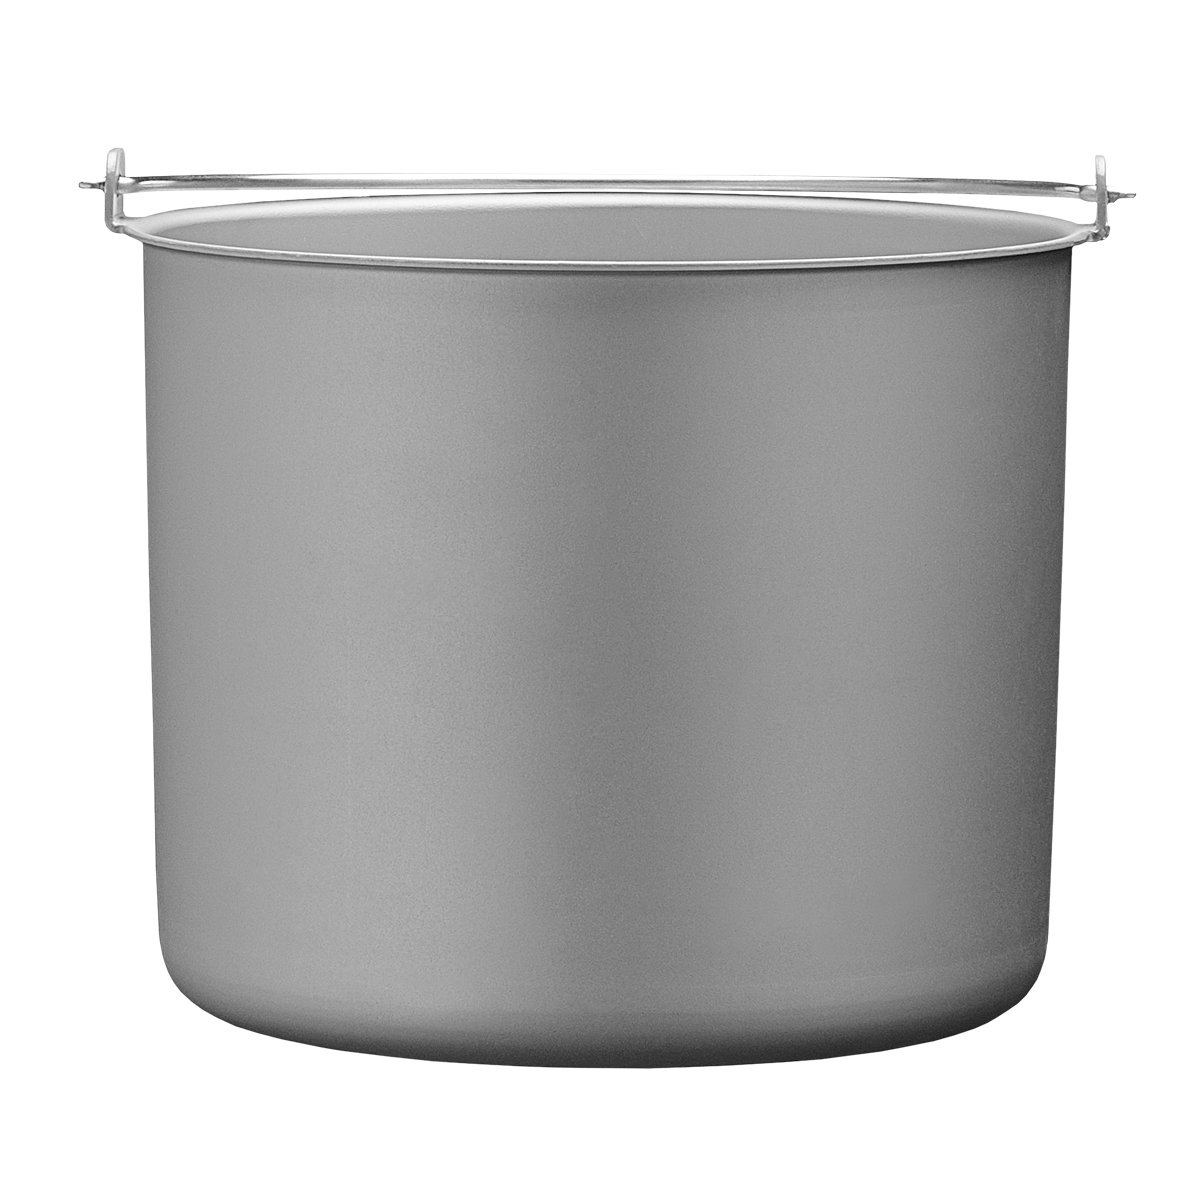 Waring Commercial WCICBWL Mixing Bowl For Wcic20, Silver